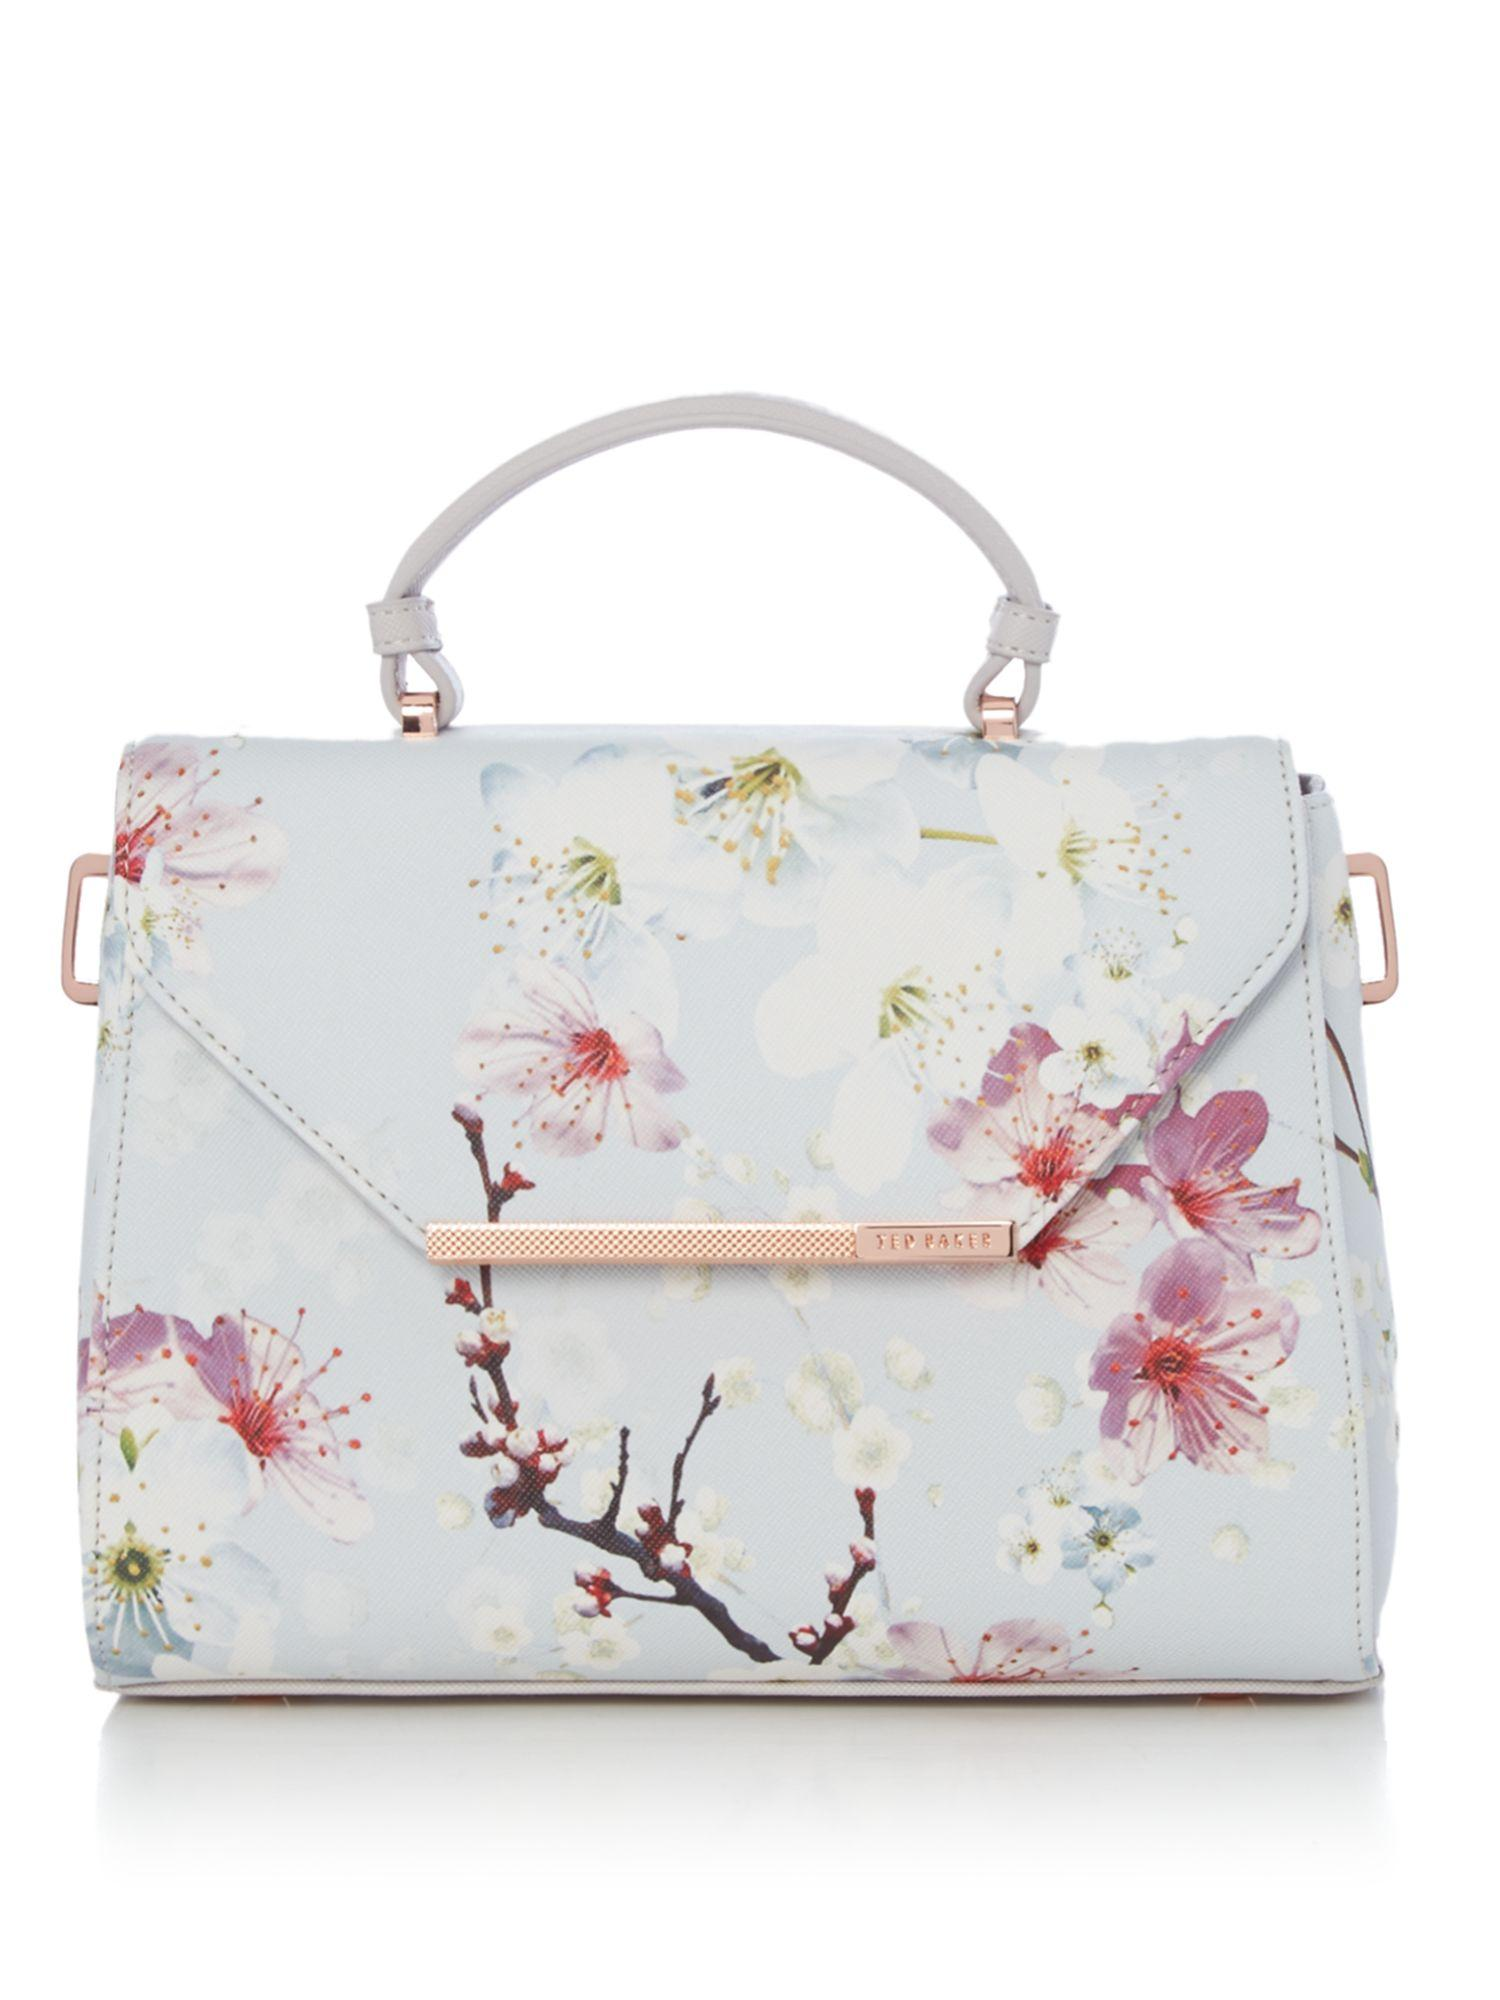 Lyst - Ted Baker Harmon Large Floral Crosshatch Tote Bag In Gray